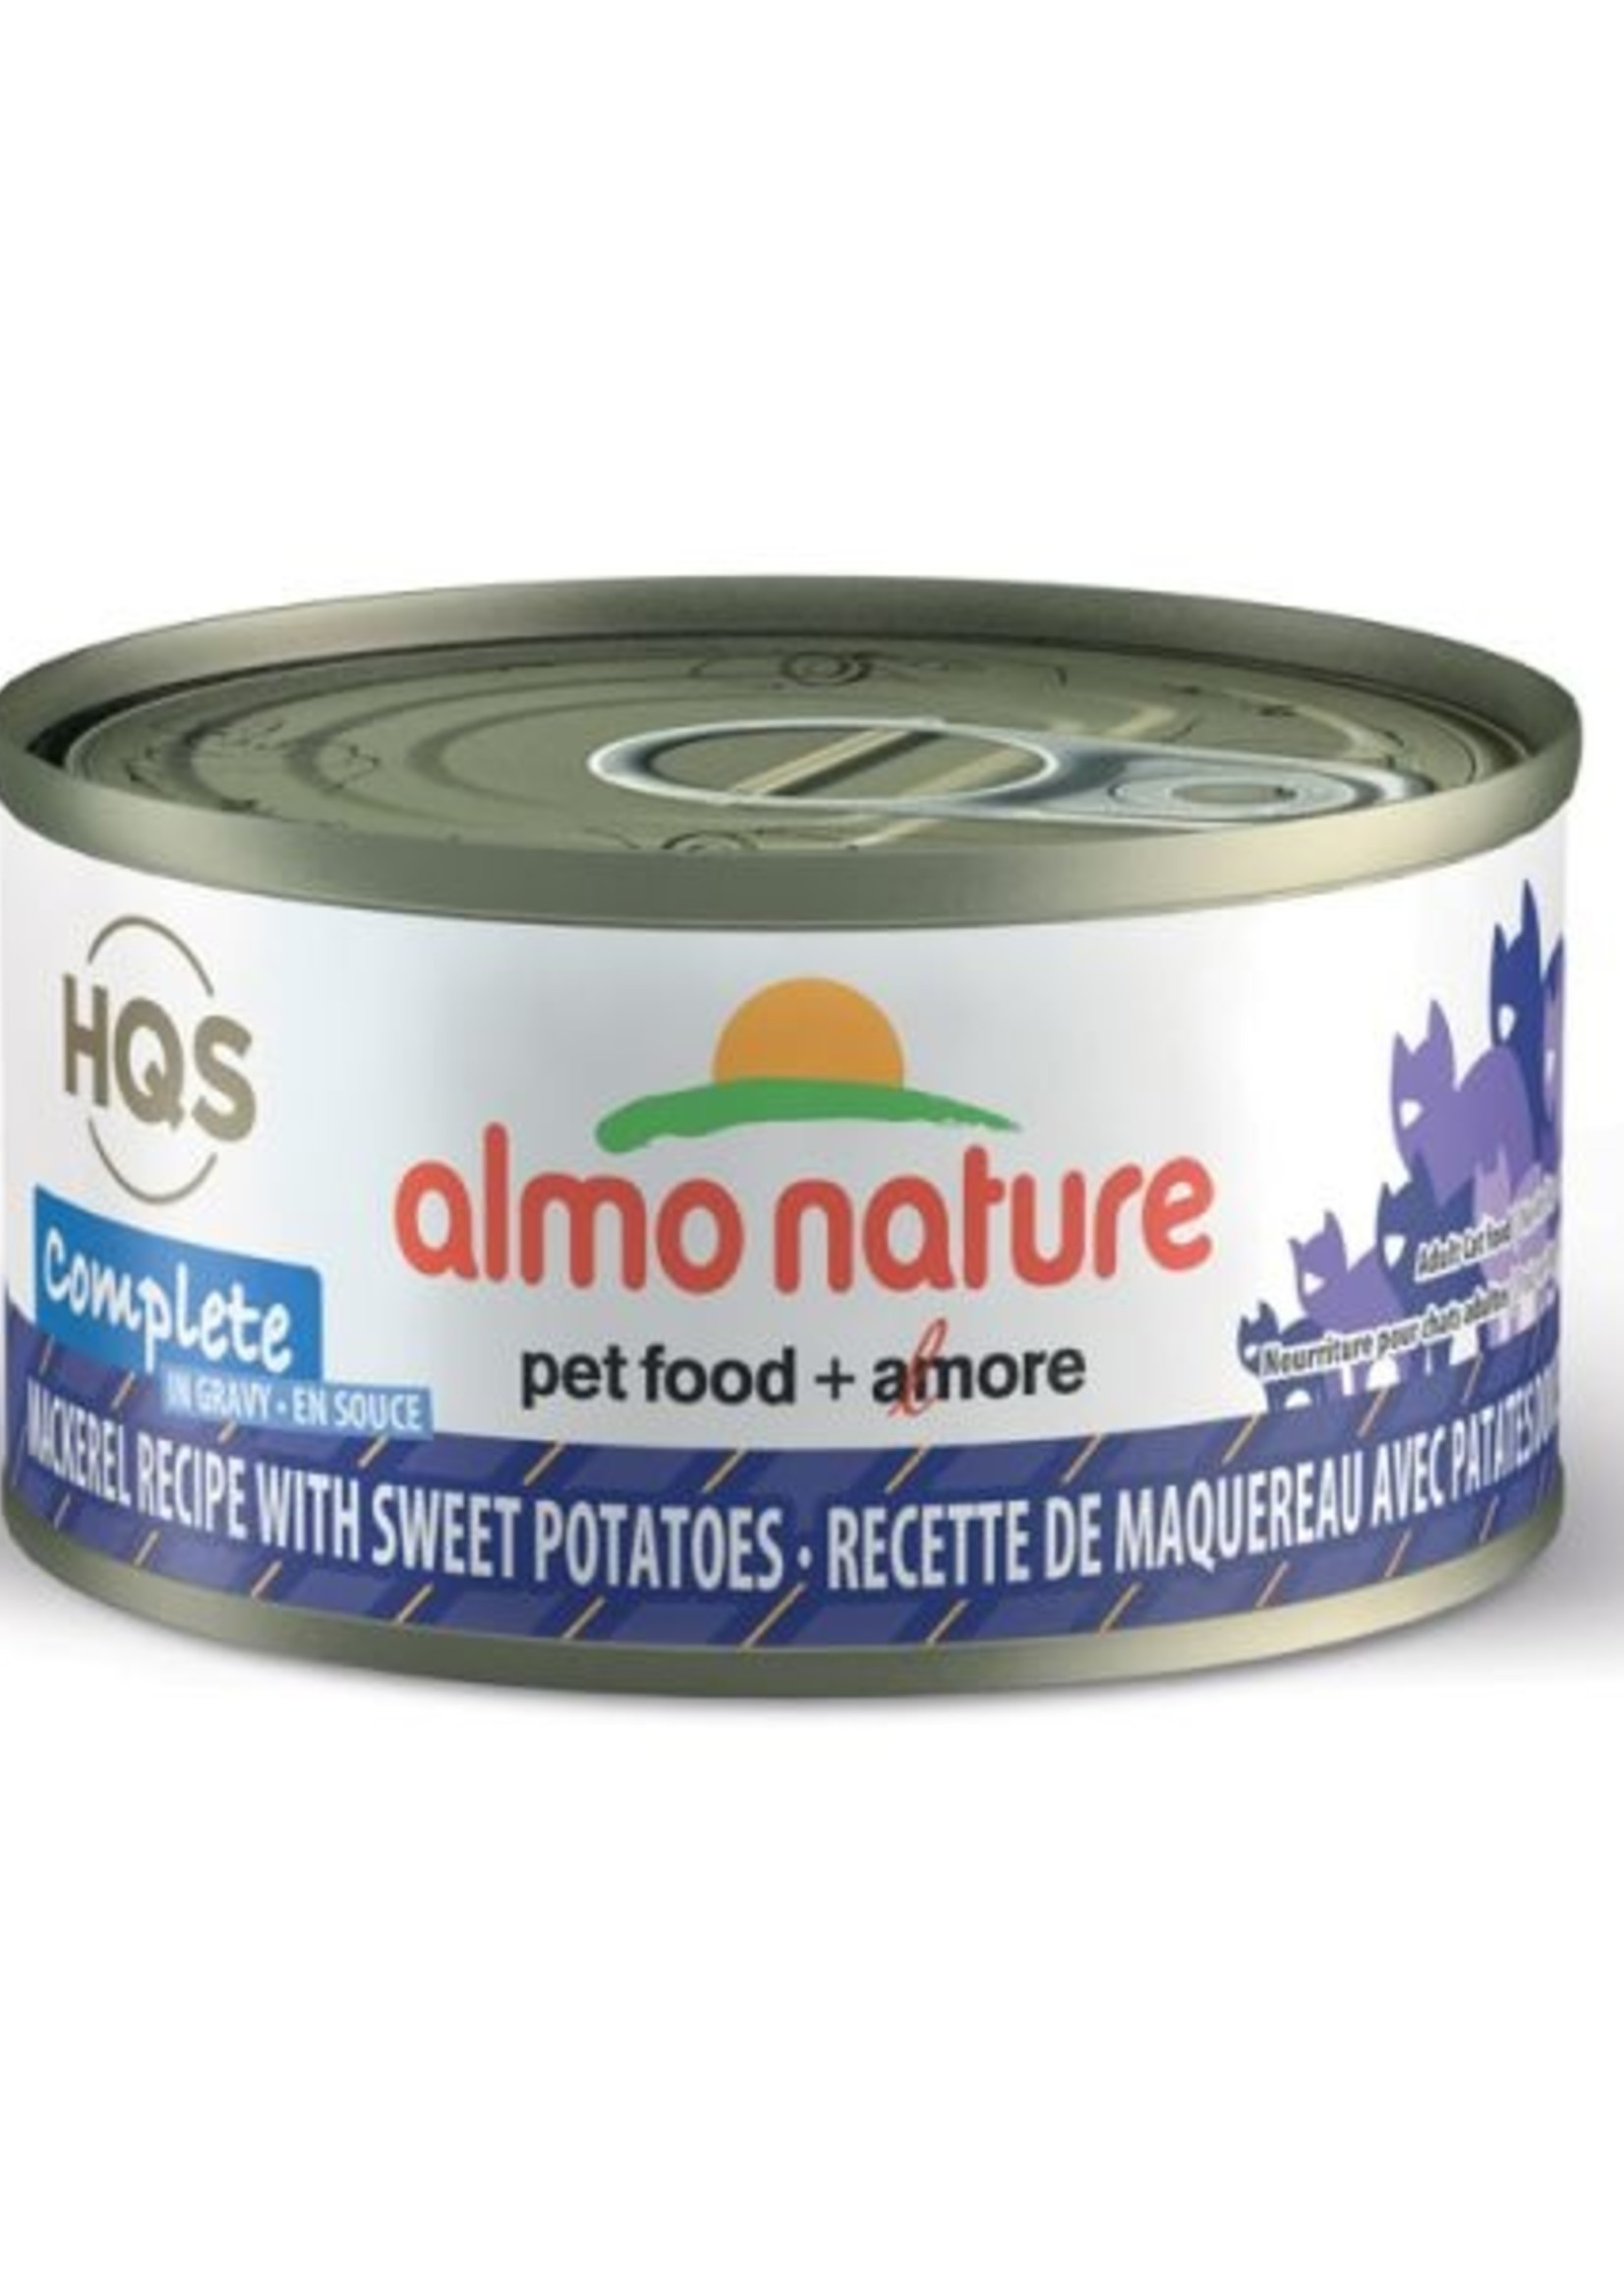 Almo Nature© Almo Nature HQS Complete Mackerel Recipe with Sweet Potatoes in Gravy 70g